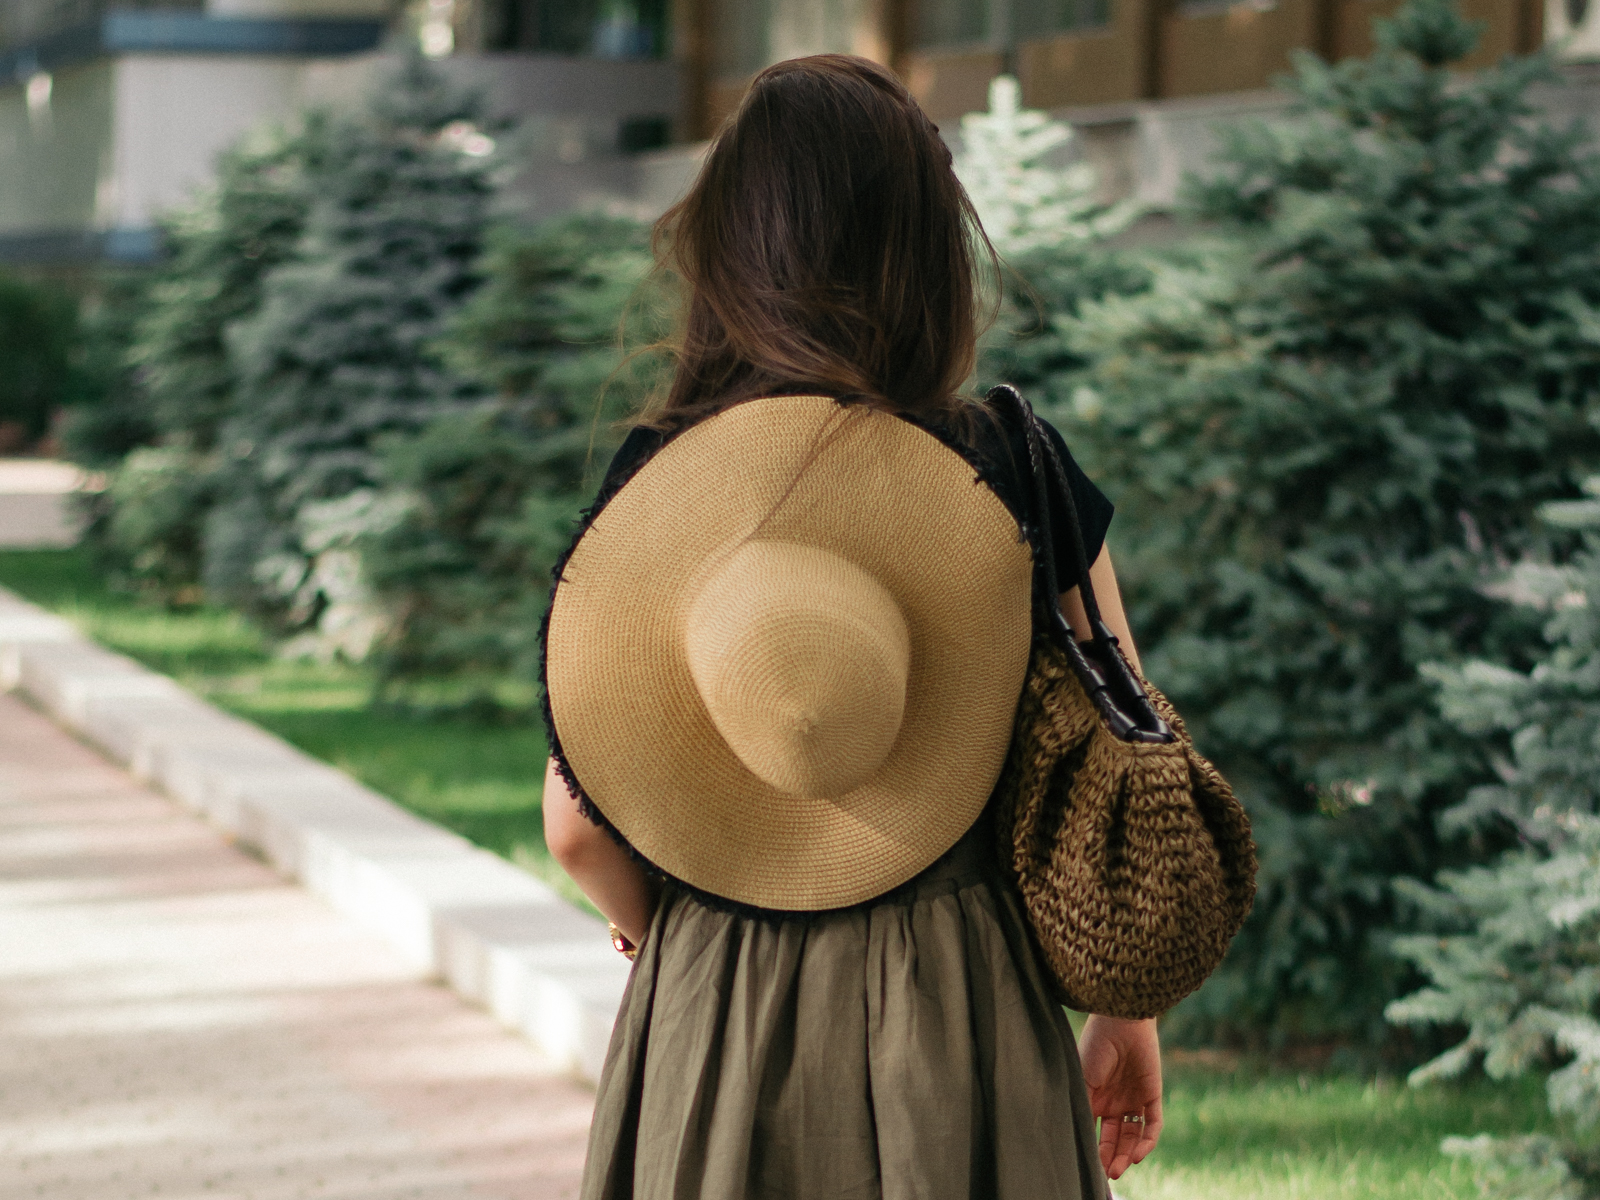 diyorasnotes diyora beta fashion blogger style outfitoftheday lookoftheday safari style black t-shirt espadrilles straw hat straw bag